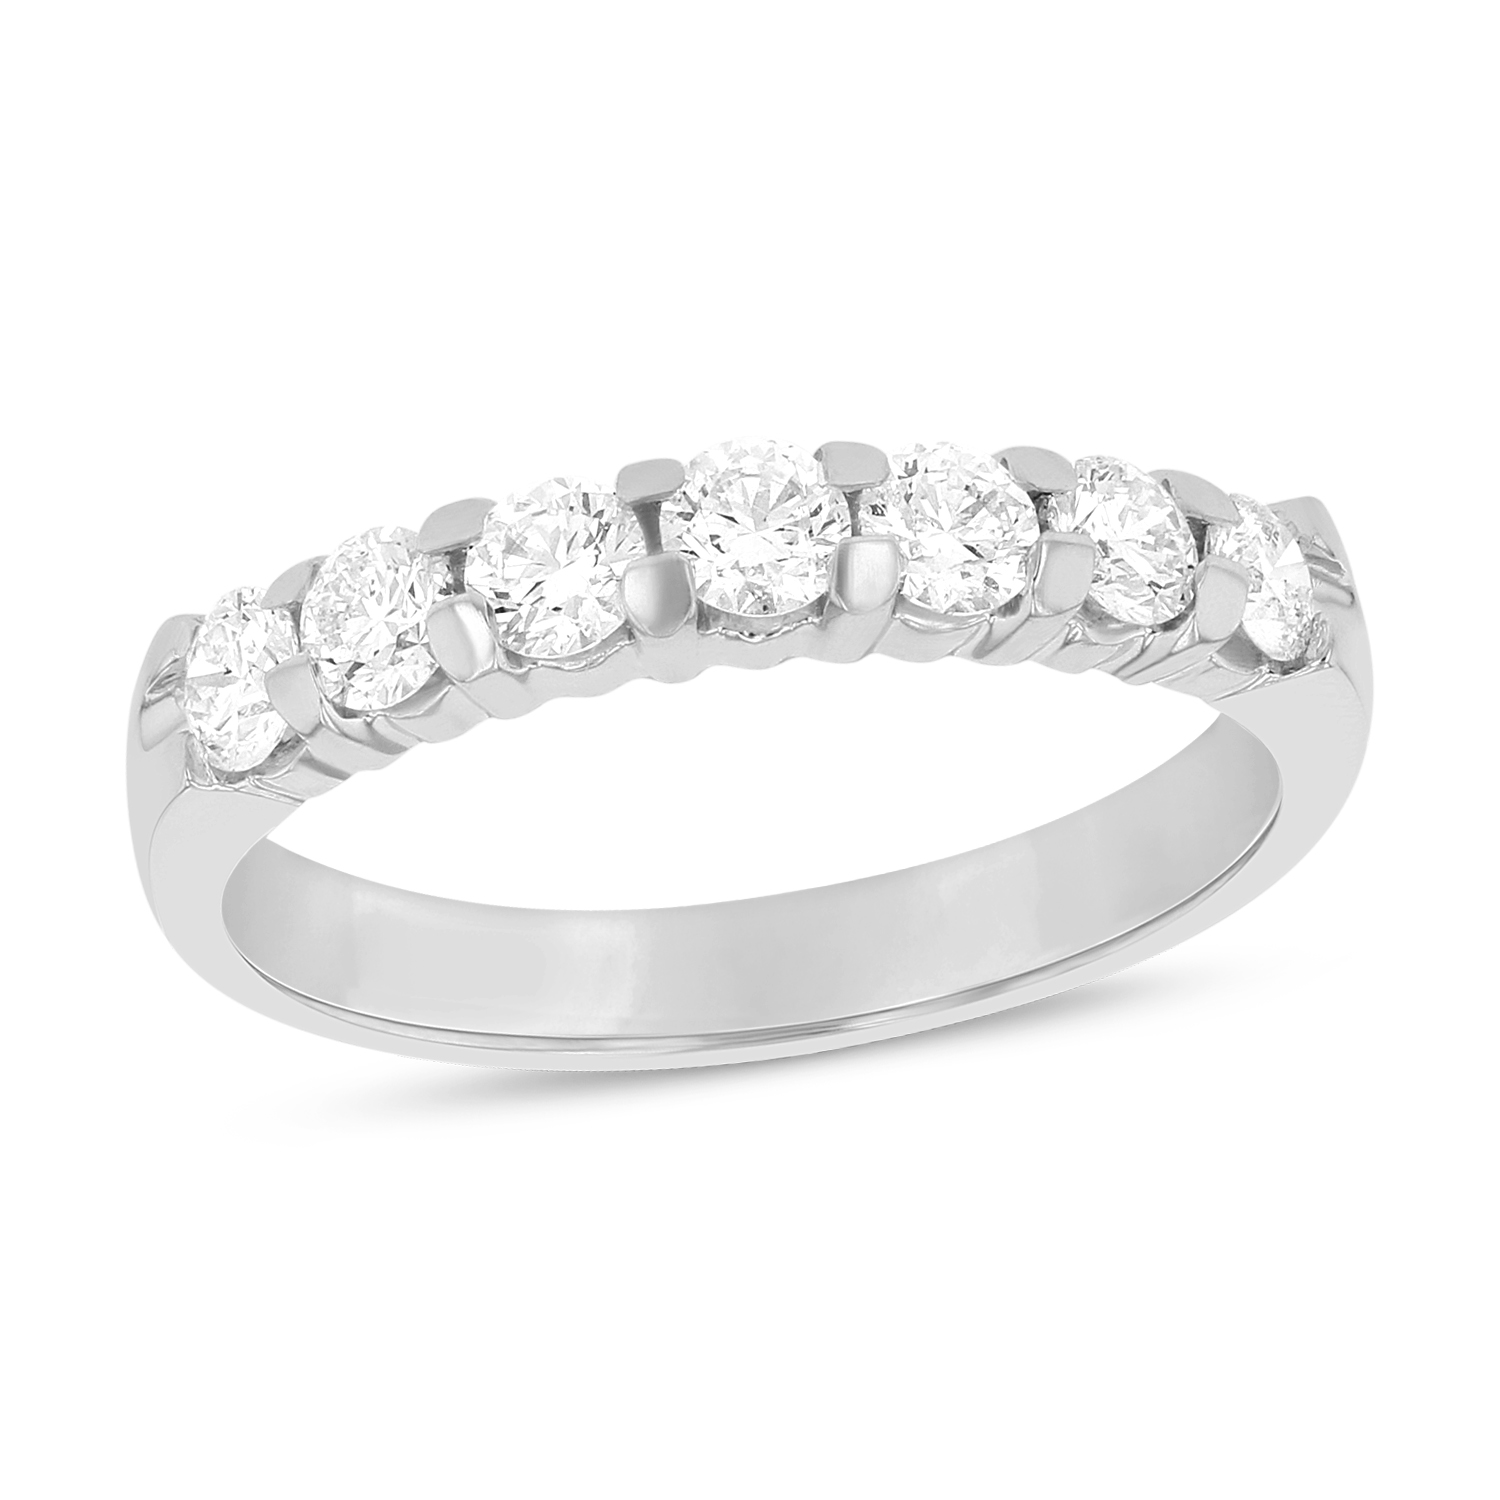 aniversary diamond ring and engagements engagement rings categories product jewelry fl anniversaries bridal jacksonville